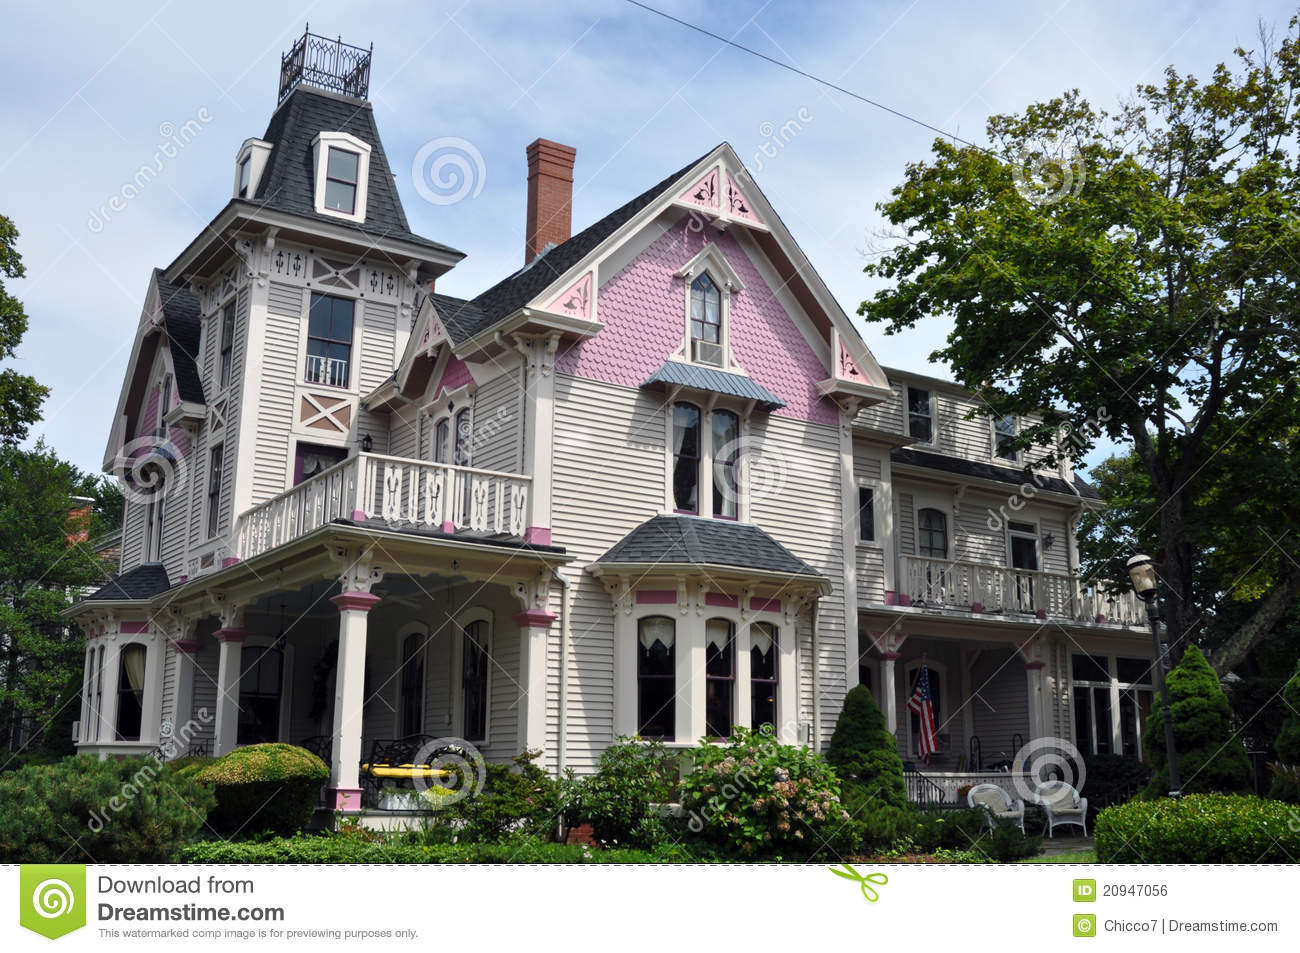 Beautiful violet and fuchsia victorian house royalty free - Plan de maison victorienne ...